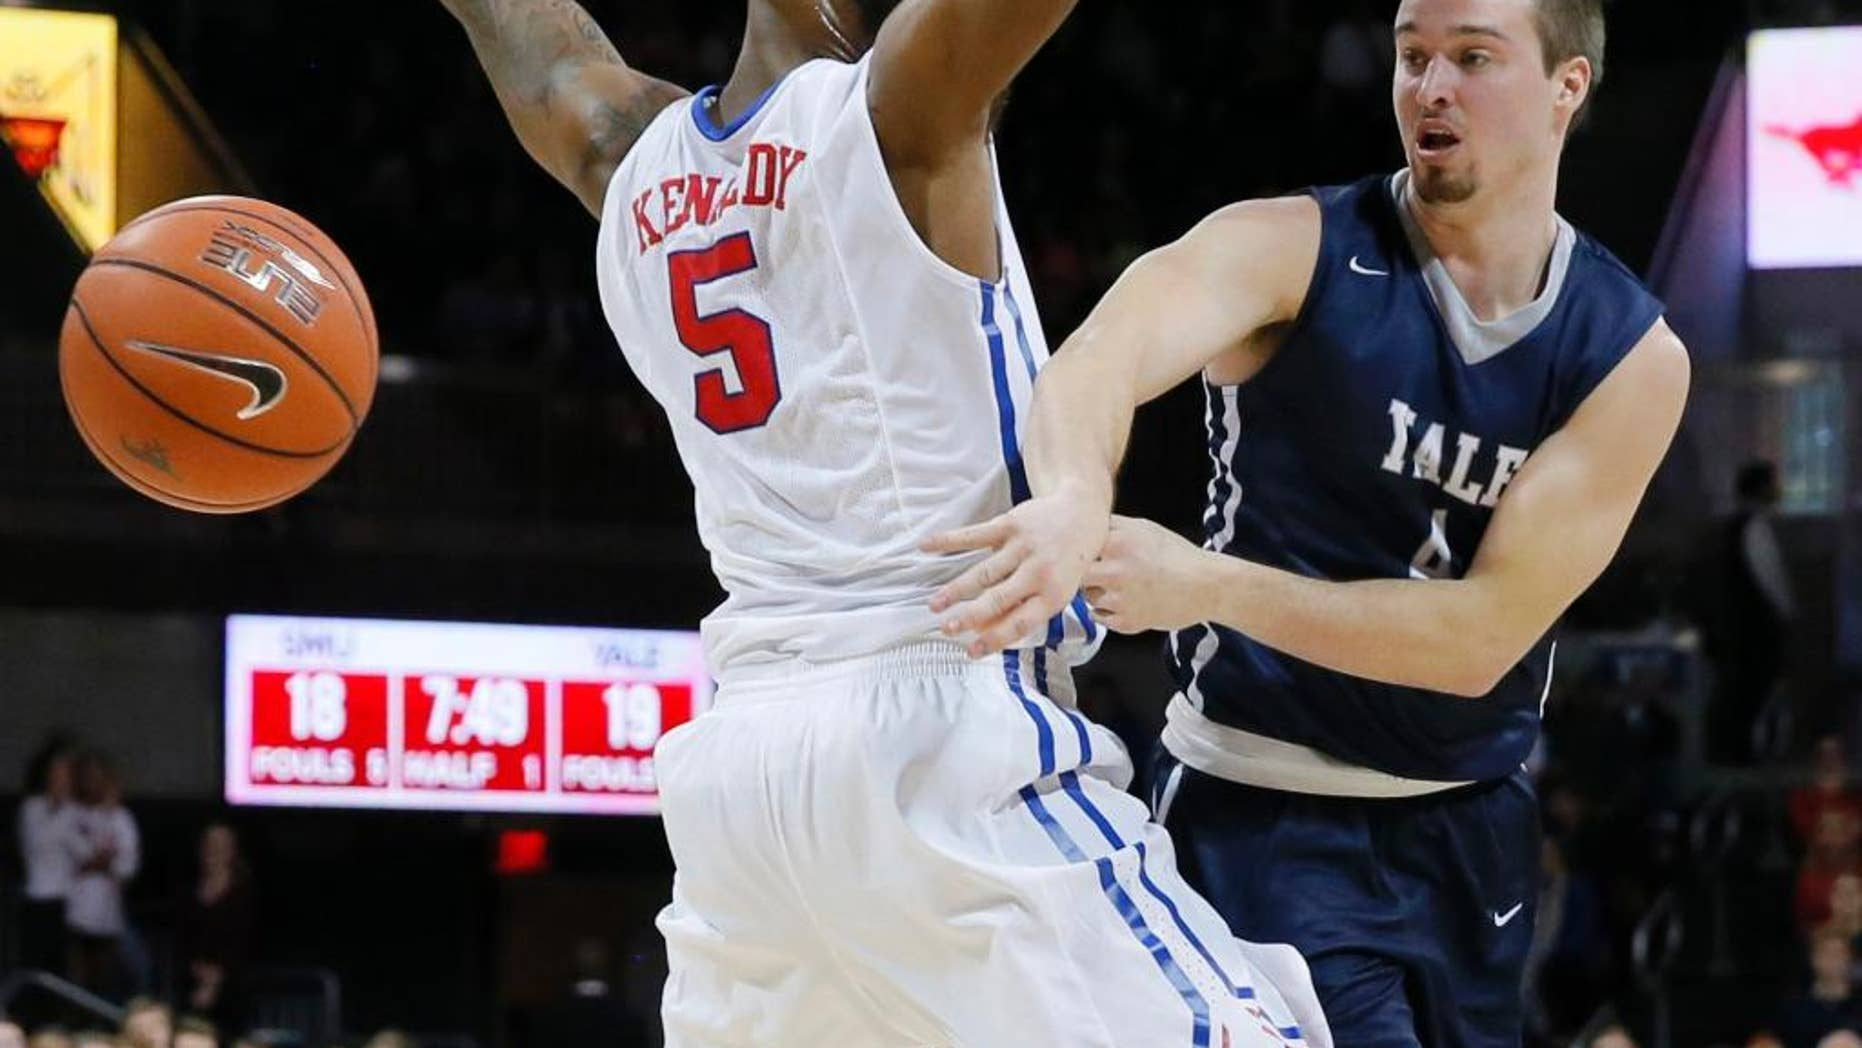 FILE - In this Nov. 22, 2015 FILE photo, Yale's Jack Montague, right, passes the ball around SMU's Markus Kennedy during an NCAA college basketball game in Dallas. Montague's attorney said he was expelled from Yale in Feb. 2016, because of a sexual assault allegation. Montague filed a federal lawsuit over the expulsion, alleging the school mishandled information that originated with someone other than the alleged victim. (AP Photo/Tony Gutierrez, File)